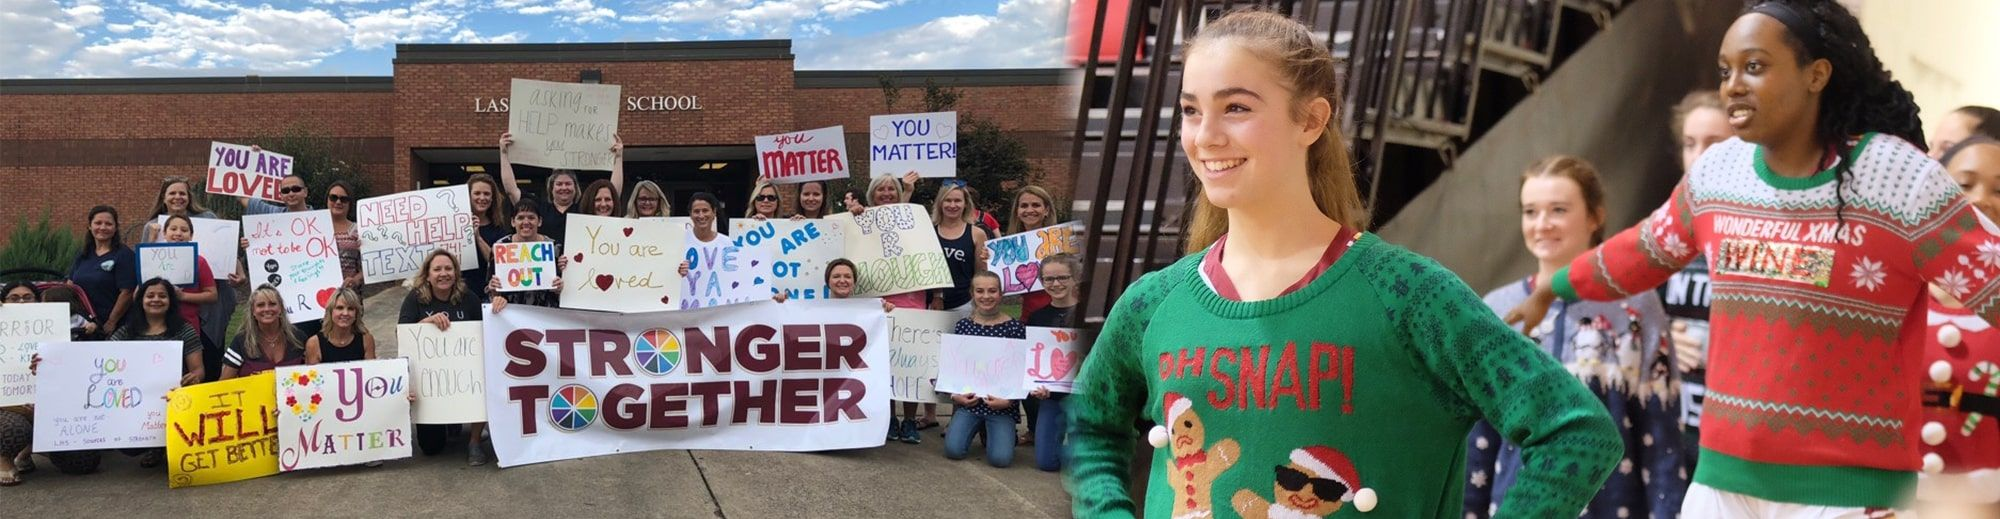 Women and female students pose in front of Lassiter High with stronger together and empowerment signs and female students show off their Christmas sweaters